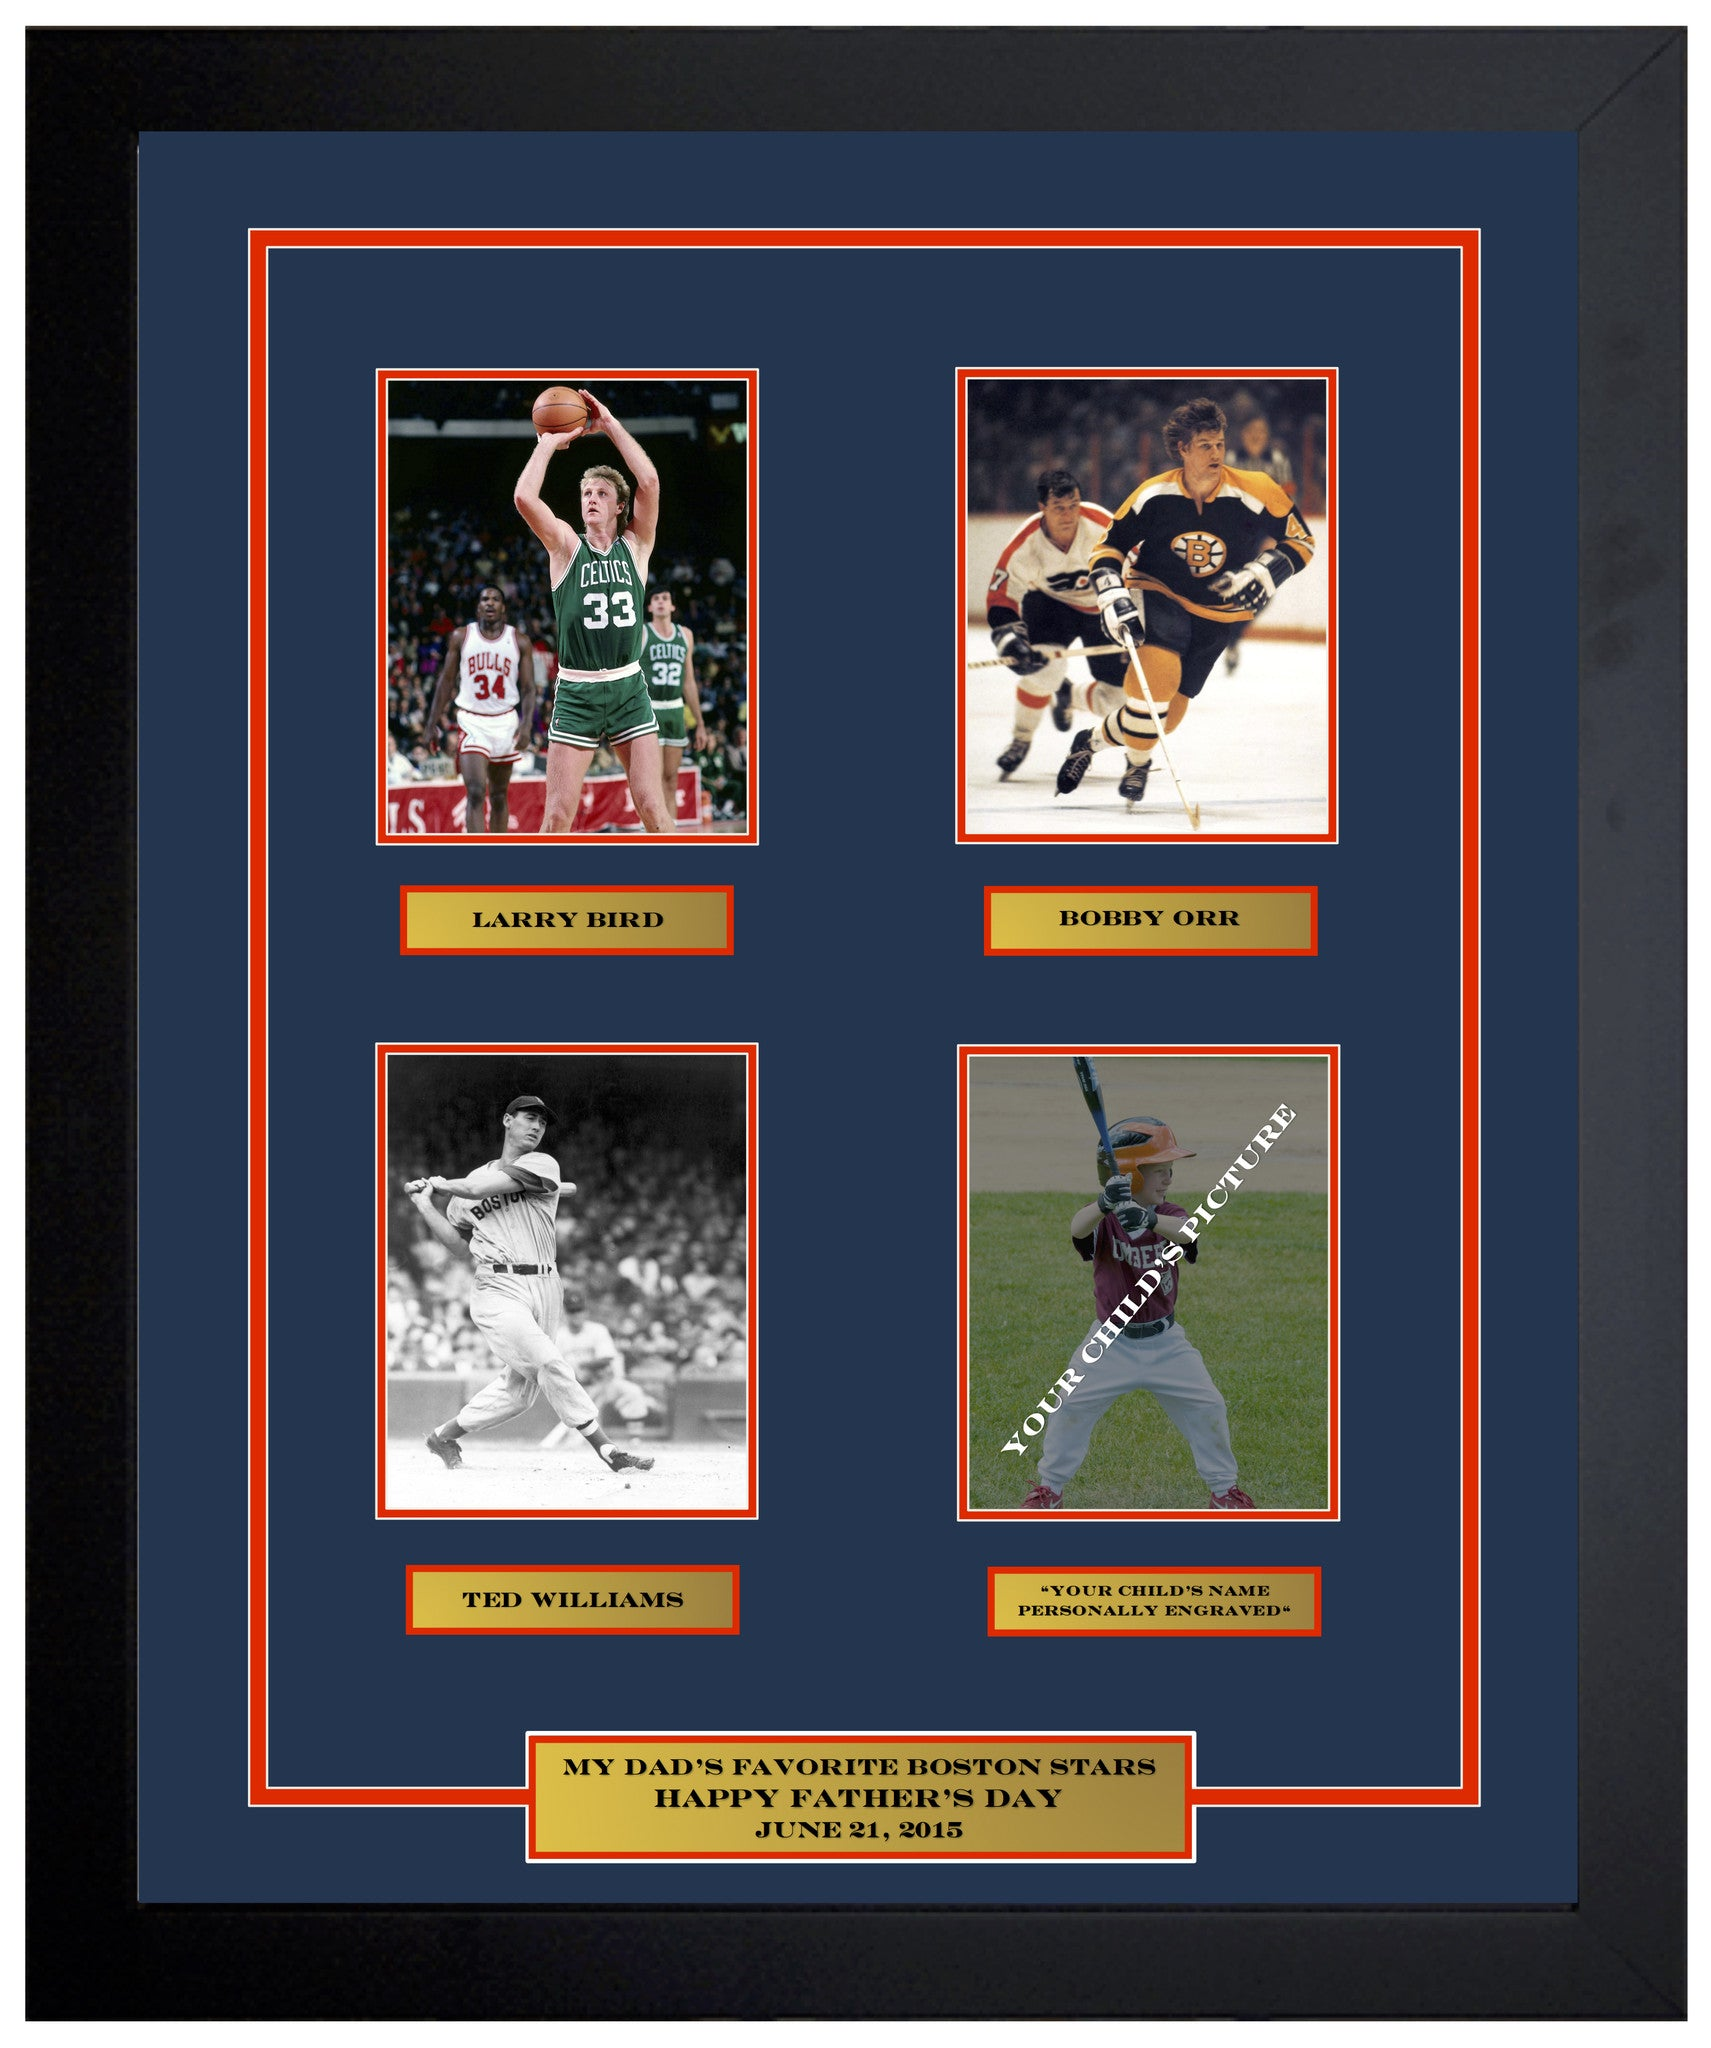 Dynasty Sports Quad Photo Collage – Dynasty Sports & Framing